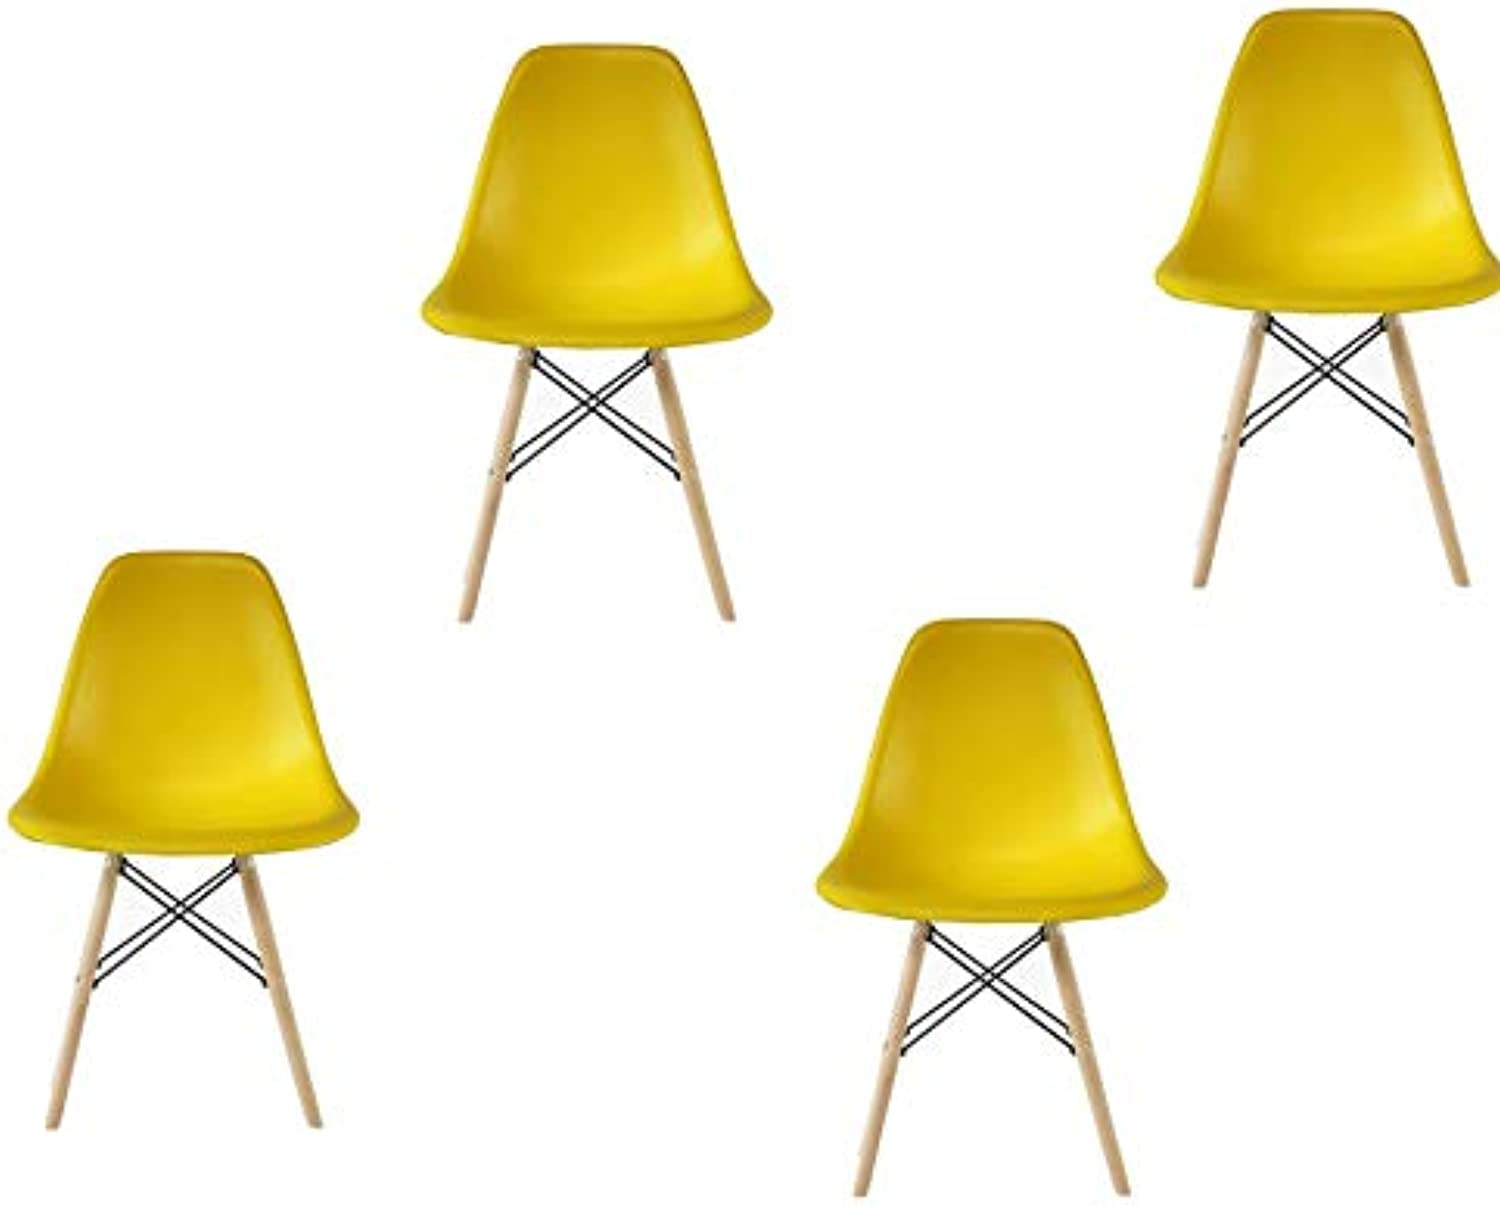 silver Import PDI-PC-0116W Eames Style Side Chair with Natural Wood Legs Eiffel Dining Room Chair, Set of 4, Yellow